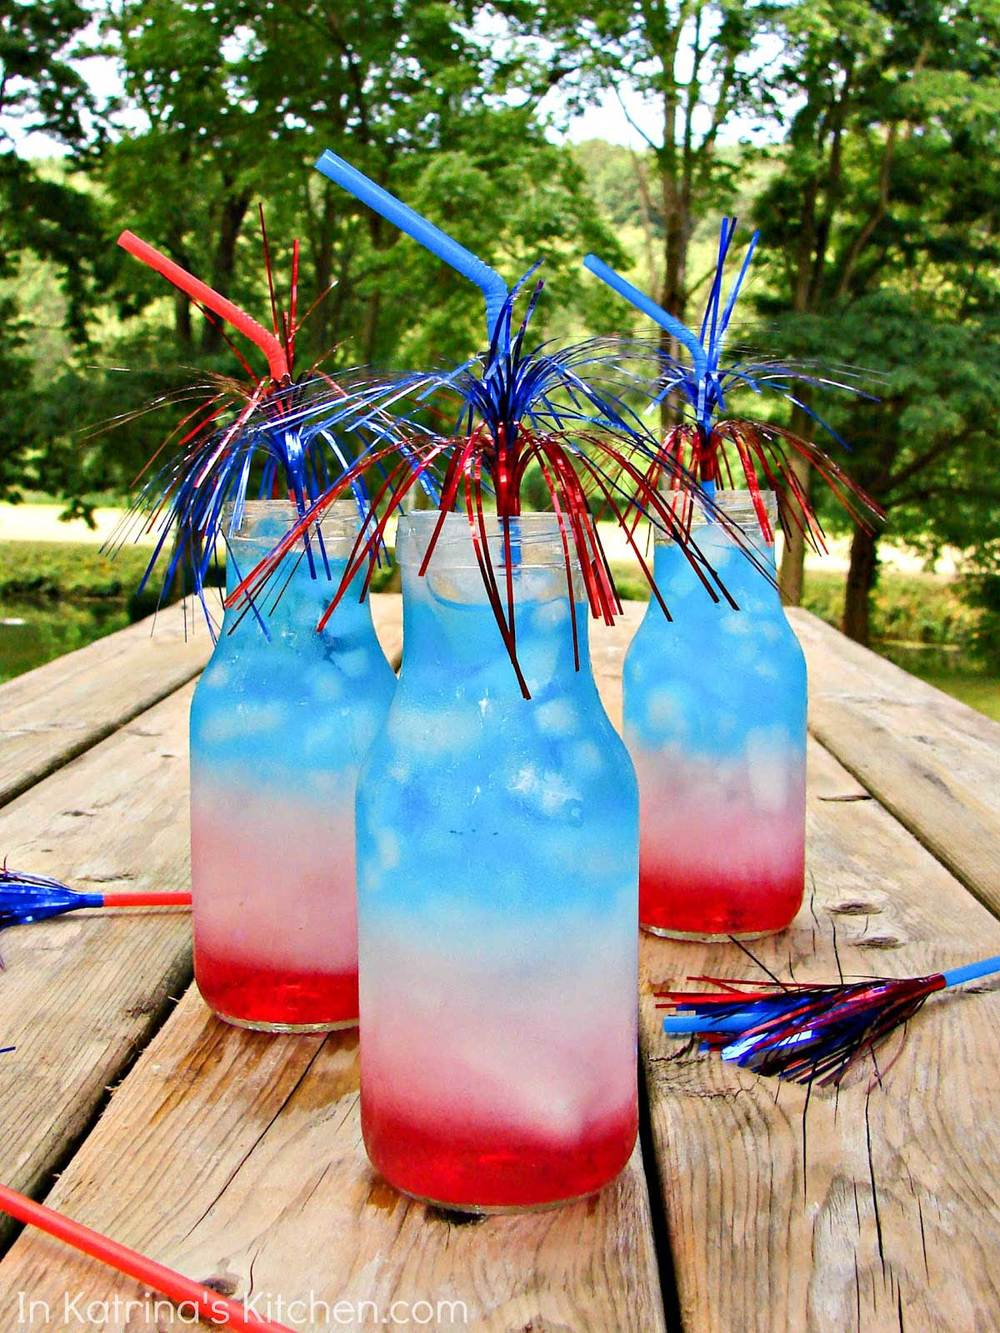 ac614__Refreshing-Red-White-and-Blue-Layered-Drink.jpg